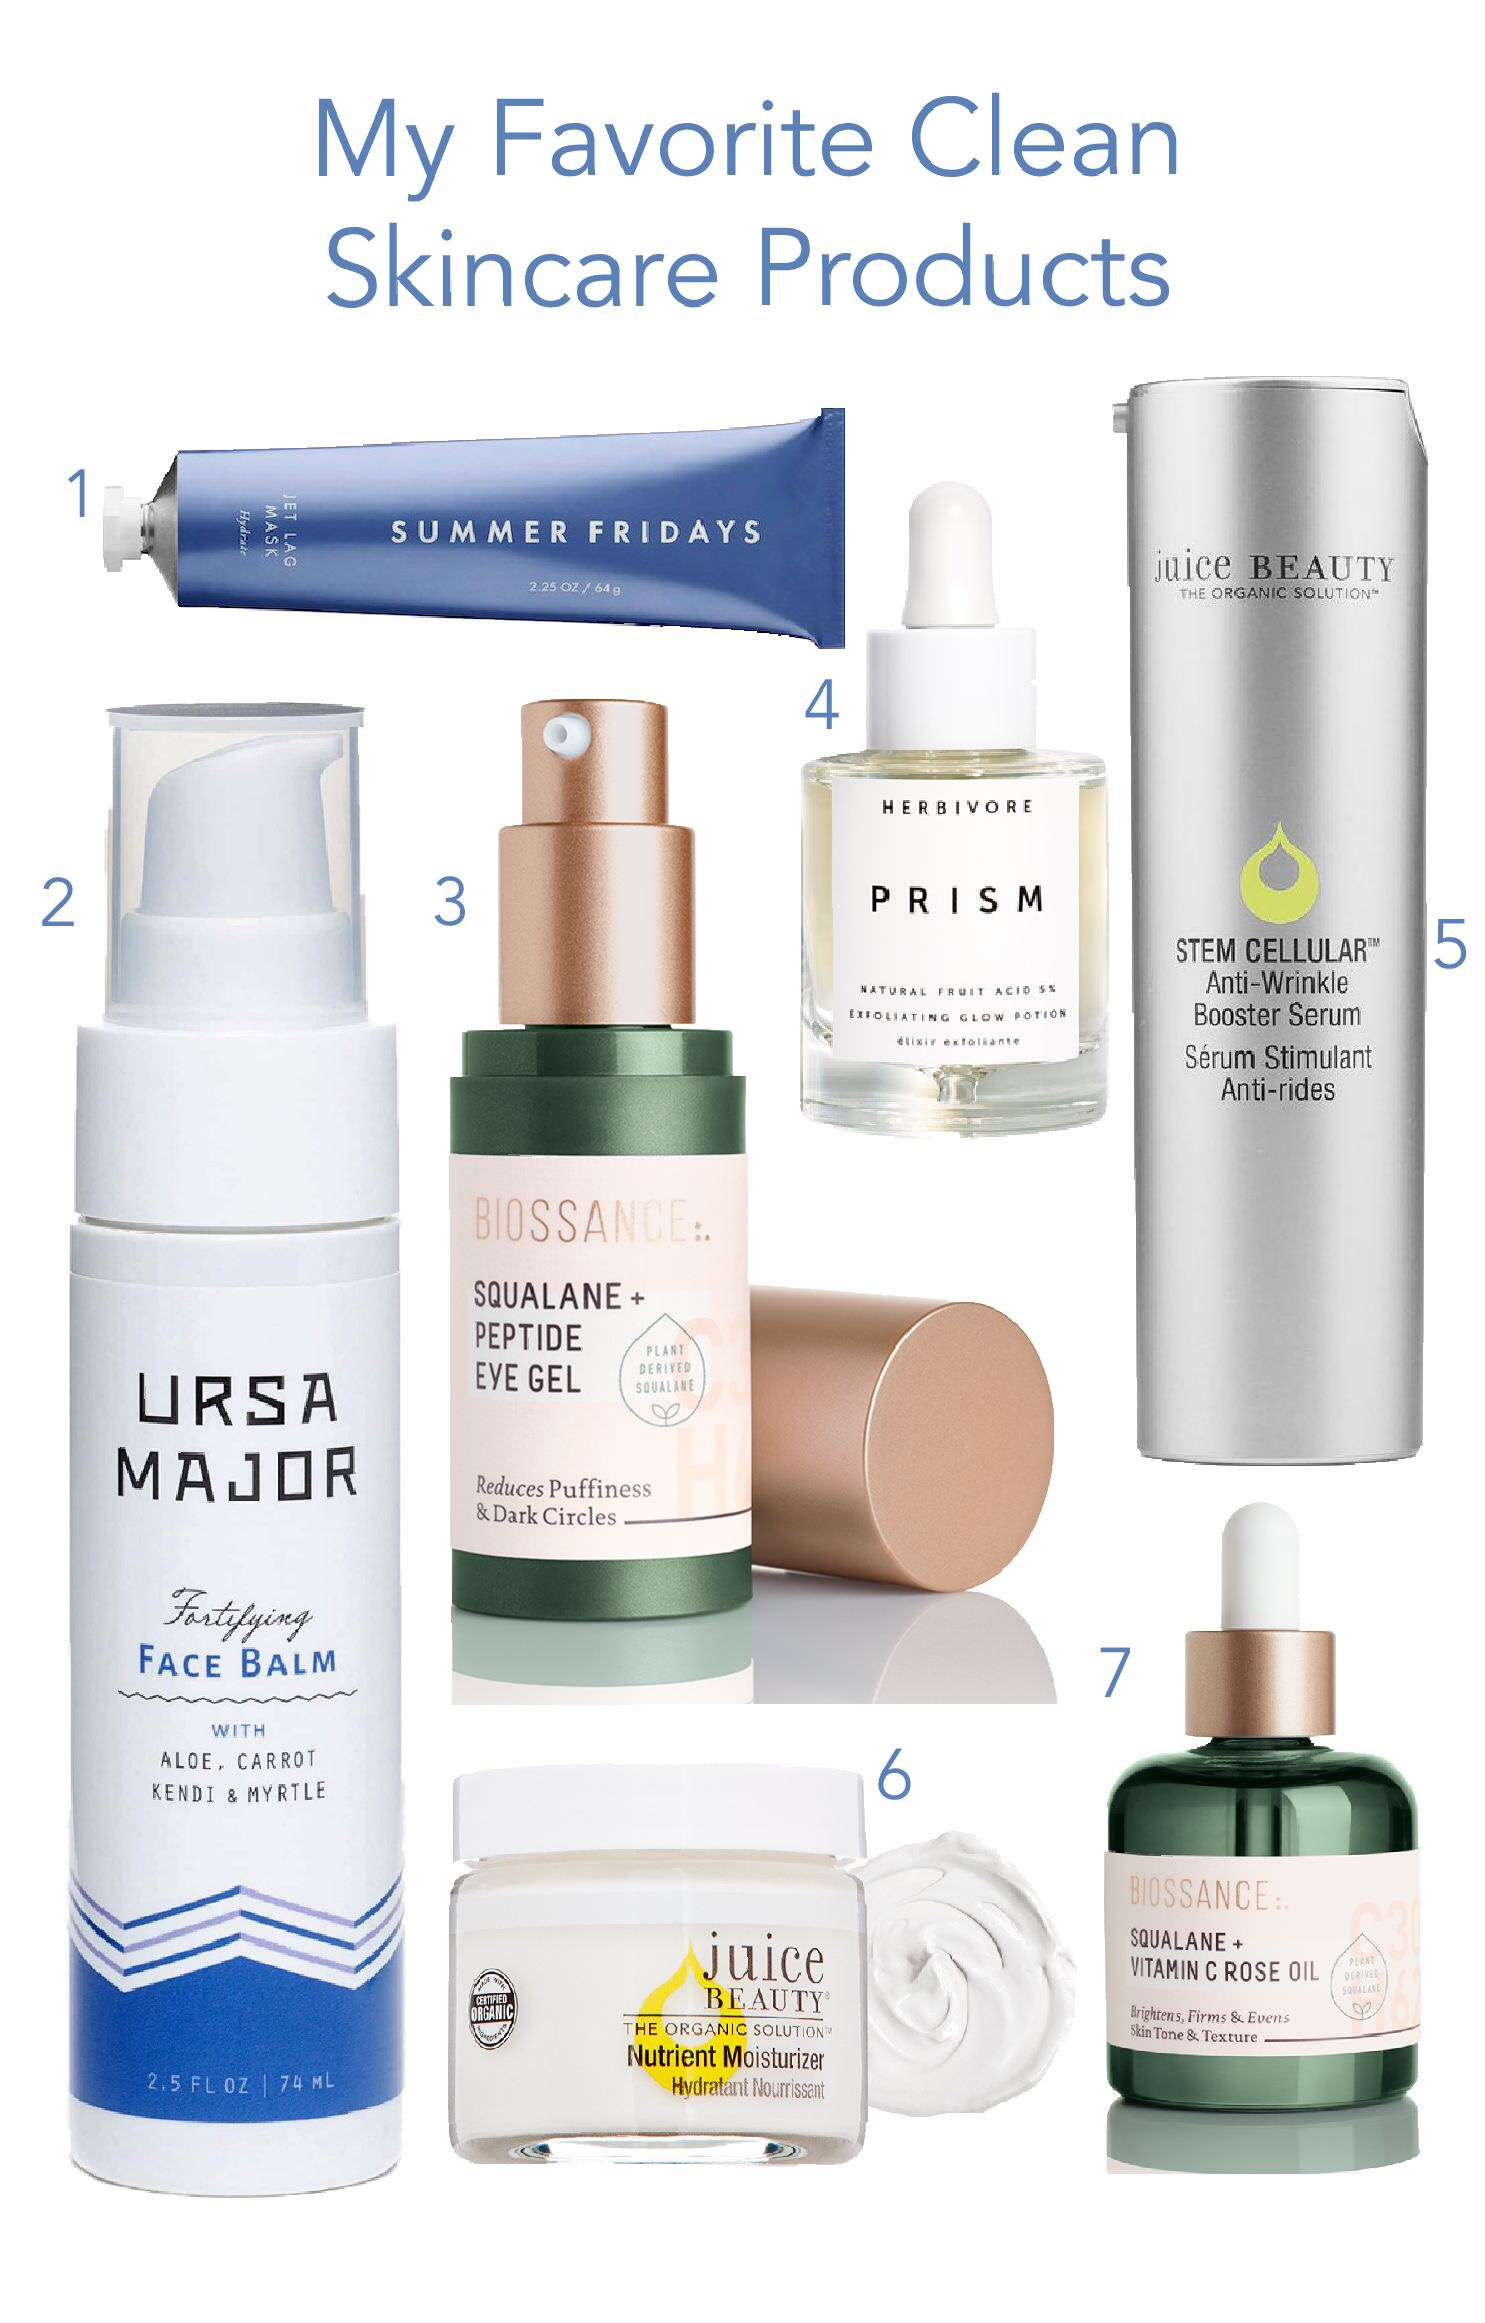 My favorite clean skincare products